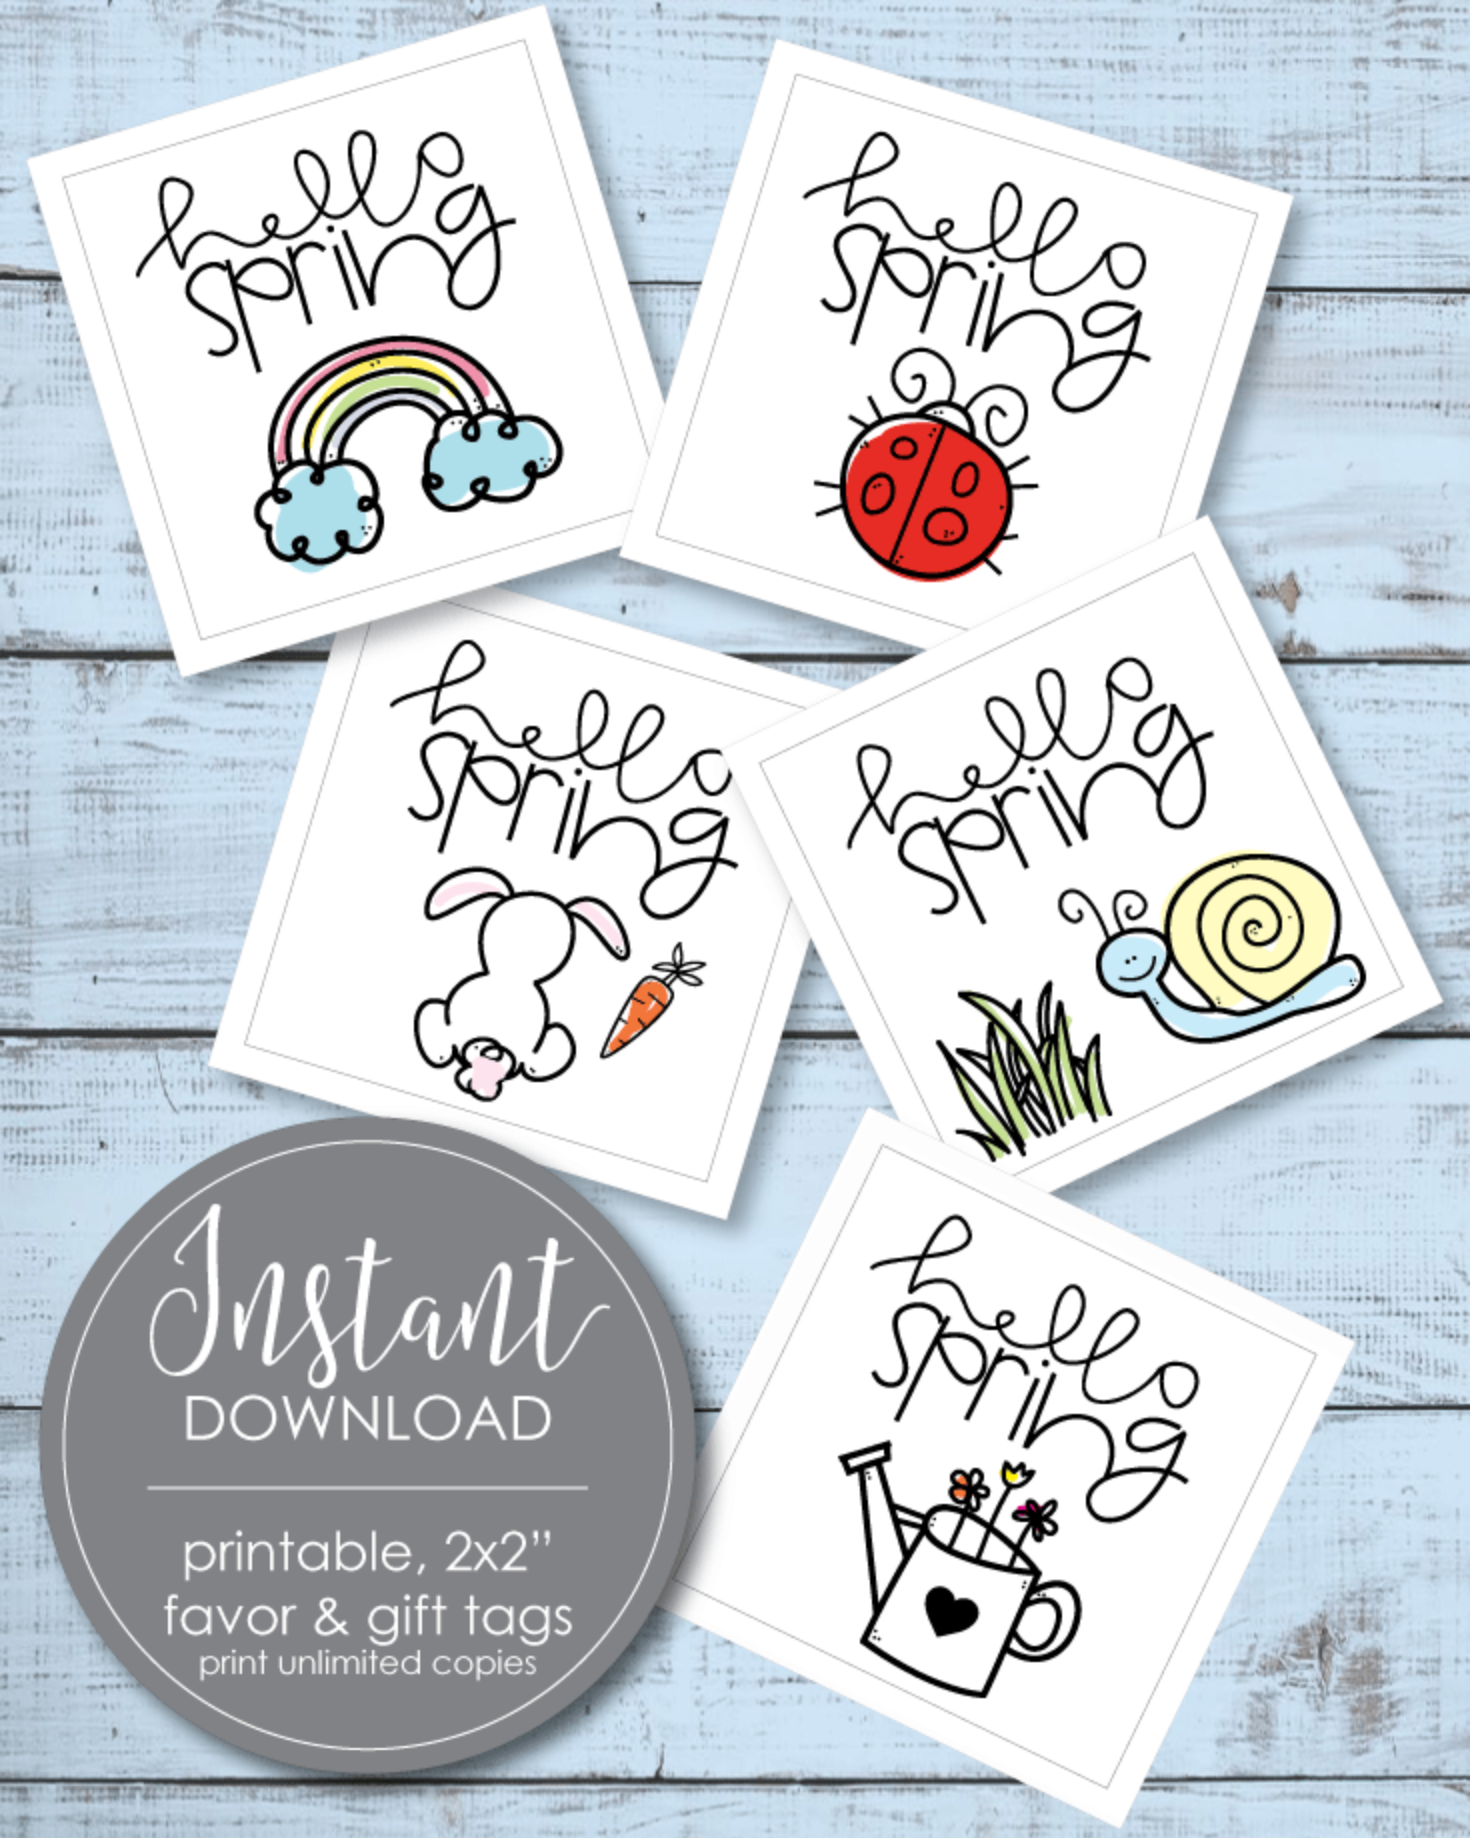 Printable Hello Spring Favor And Gift Tags - 2x2""